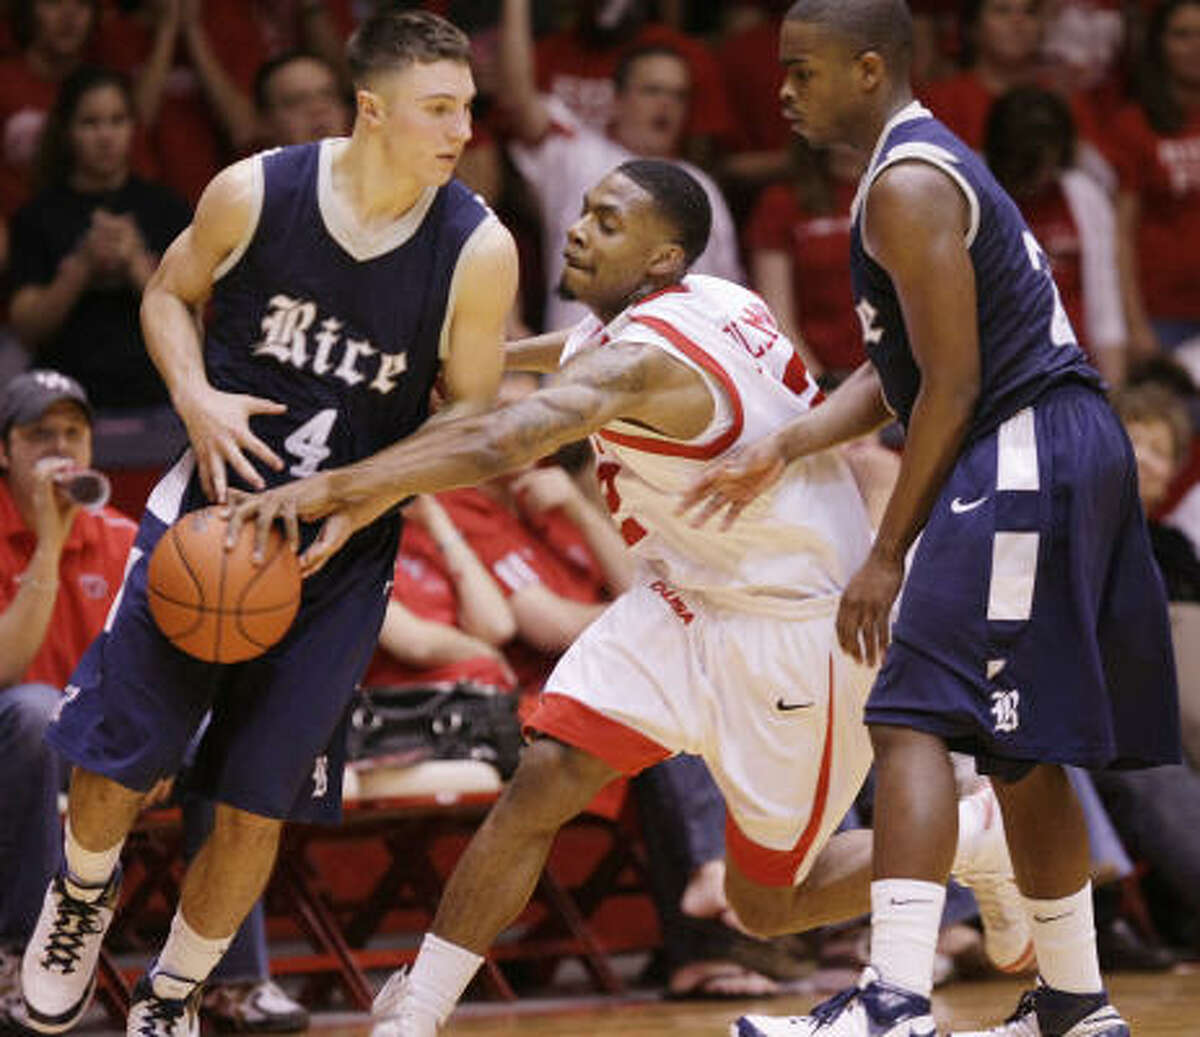 Aubrey Coleman, center, received his first taste of the UH-Rice rivalry Feb. 7, 2009. He recorded 27 points and 12 rebounds to lead the Cougars to a 72-65 win.